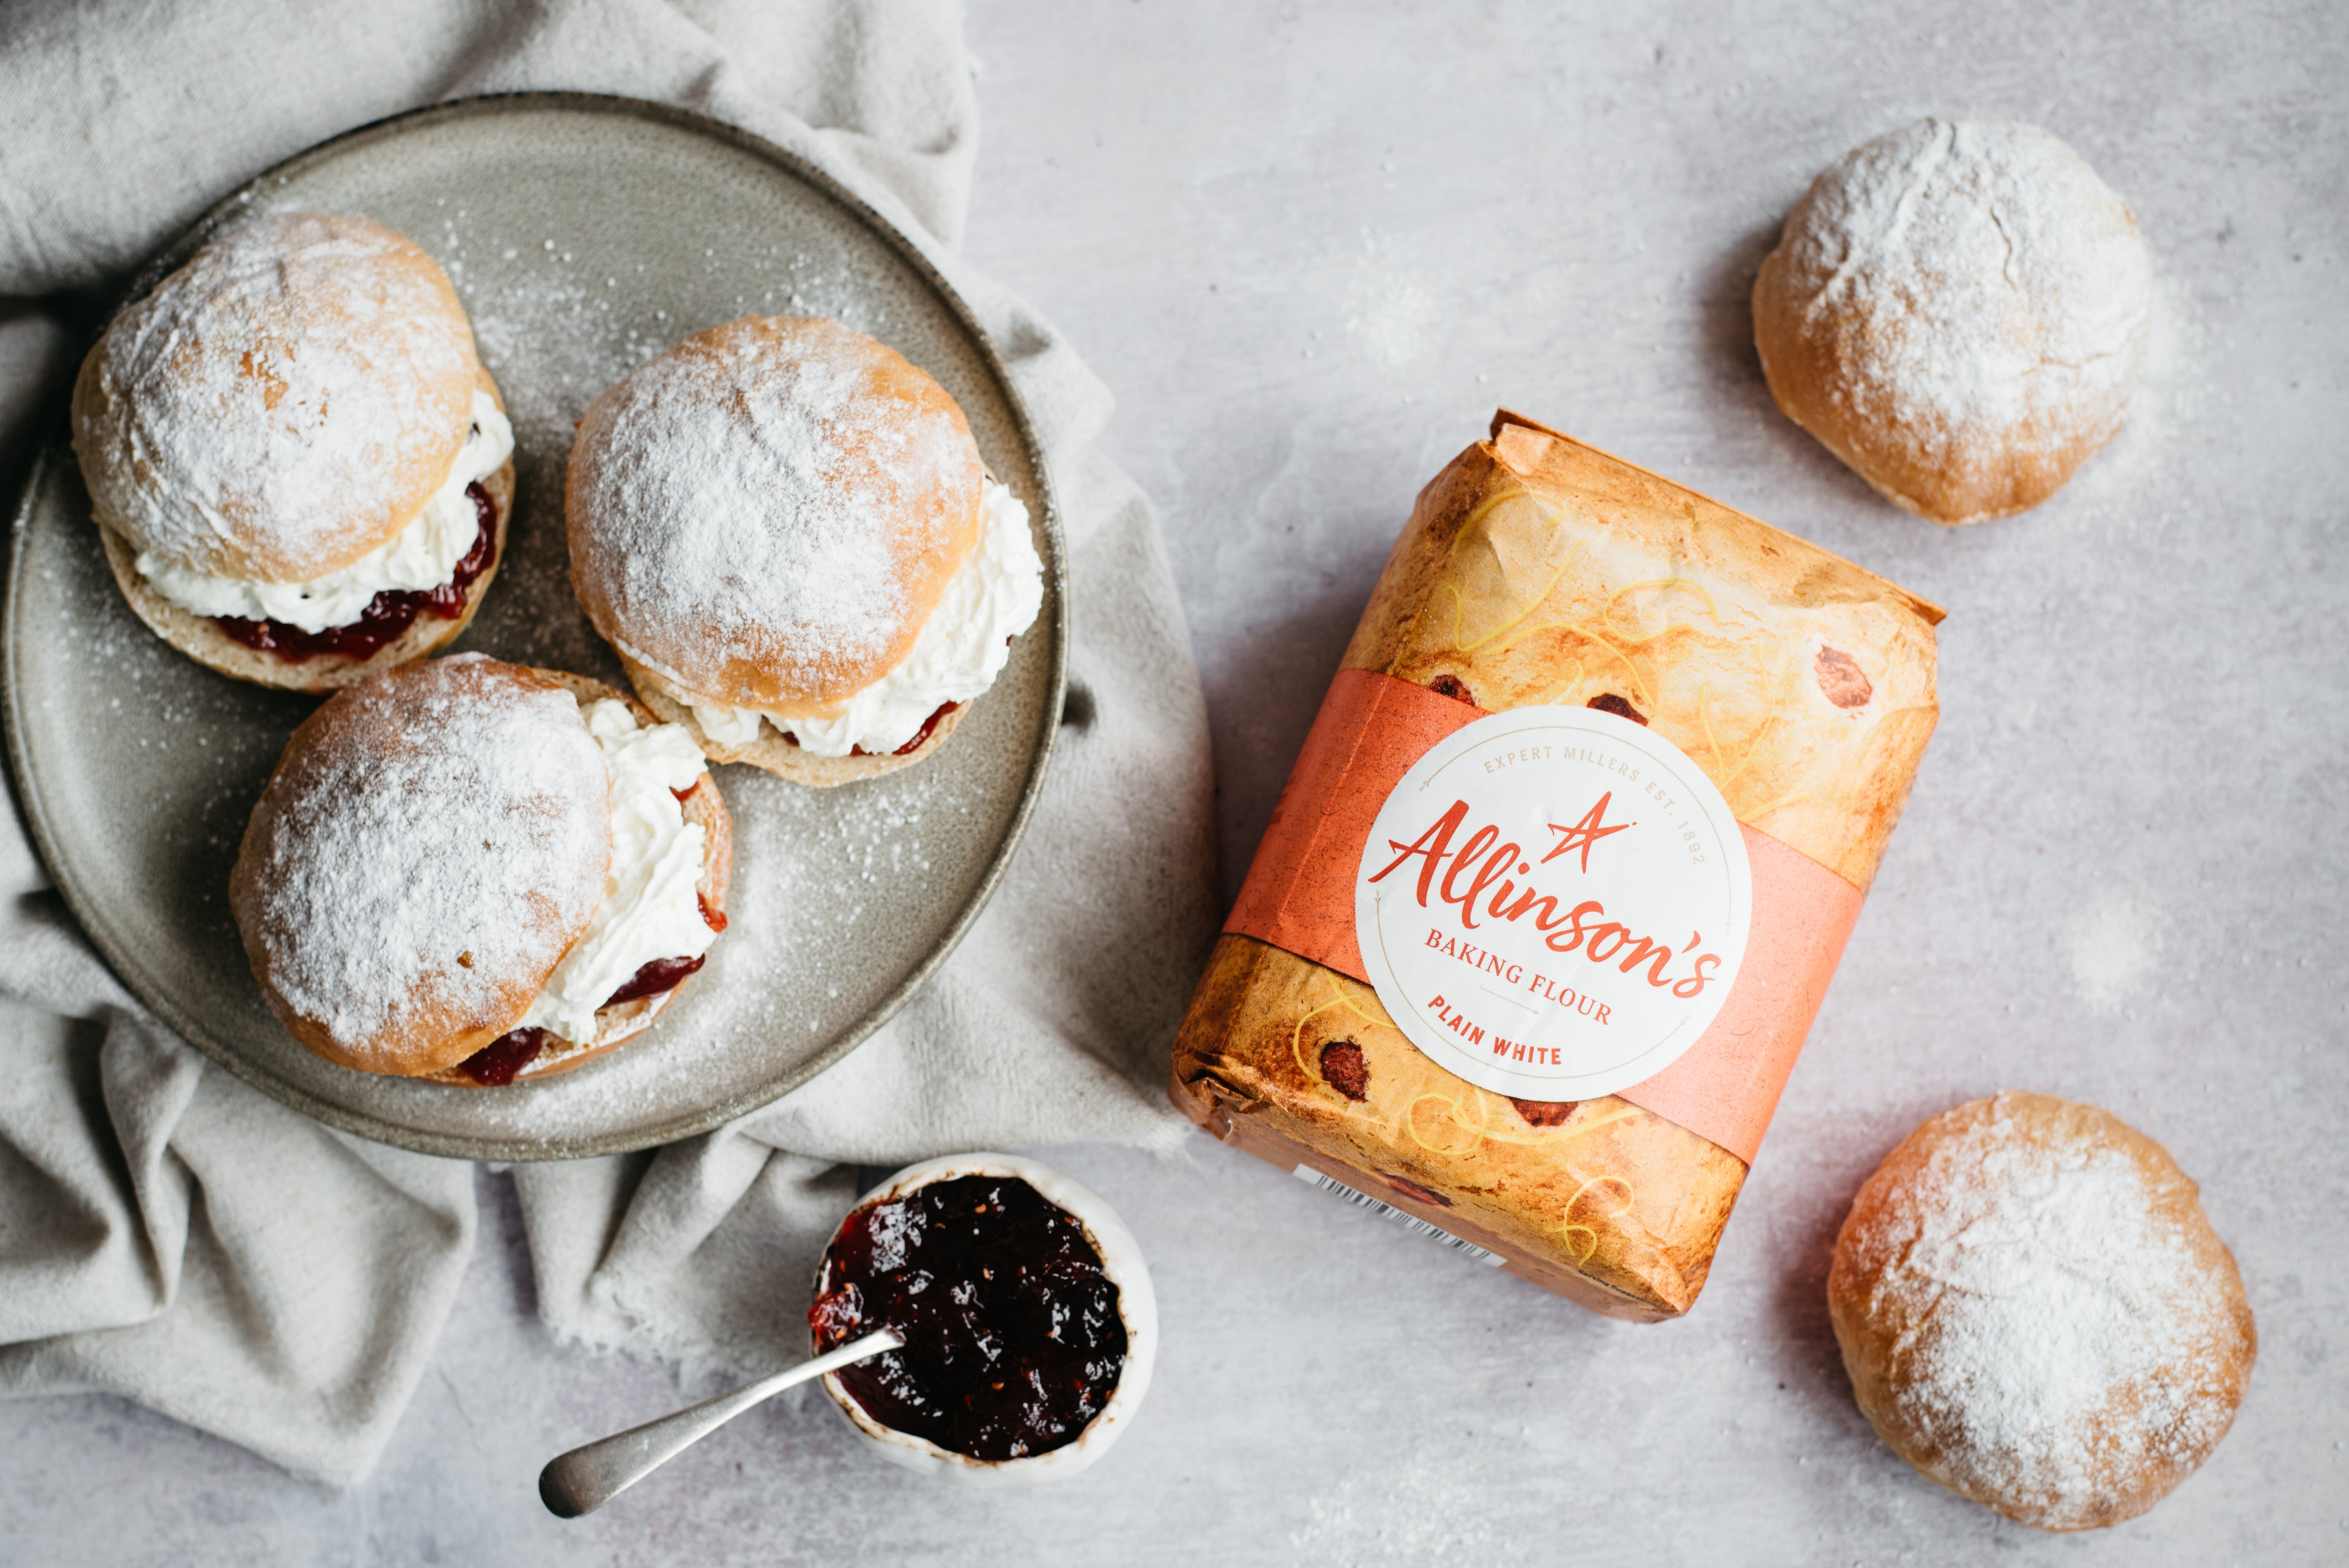 Flat lay of Devonshire Splits next to a bag of Allinson's plain flour and a bowl of jam.